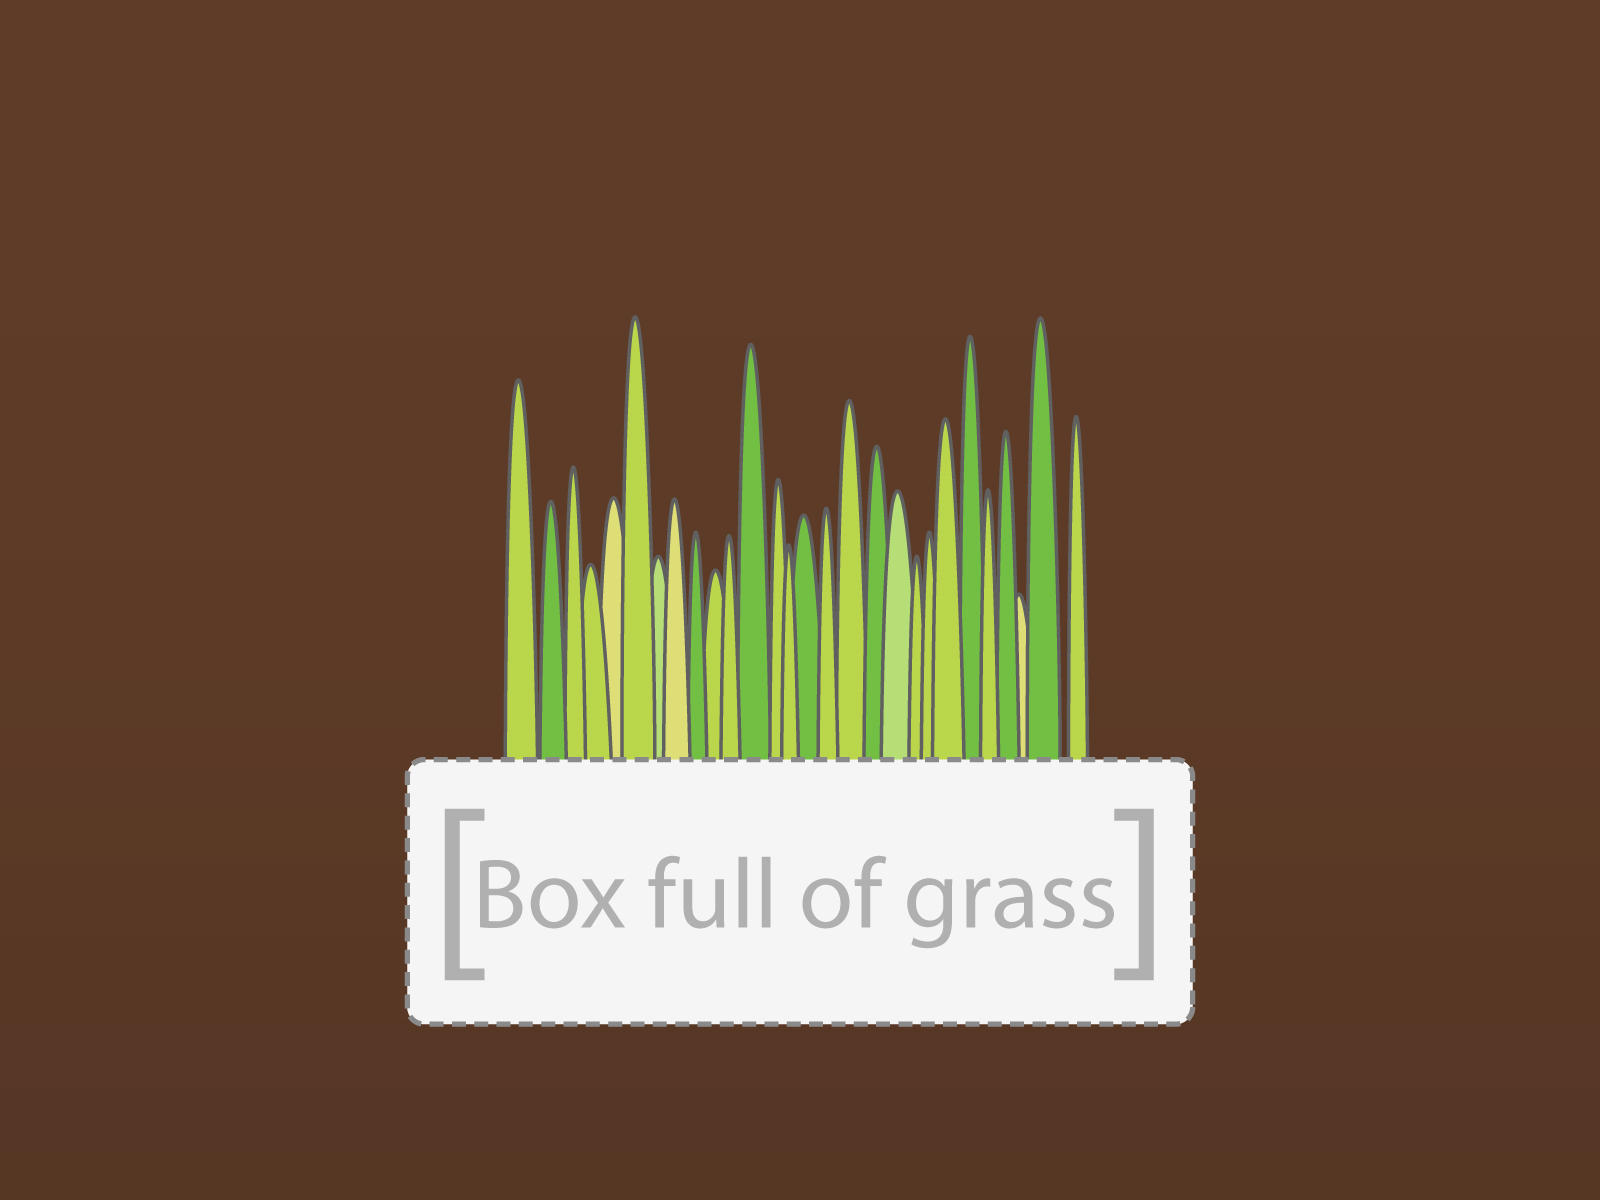 box full of grass by vinitlee